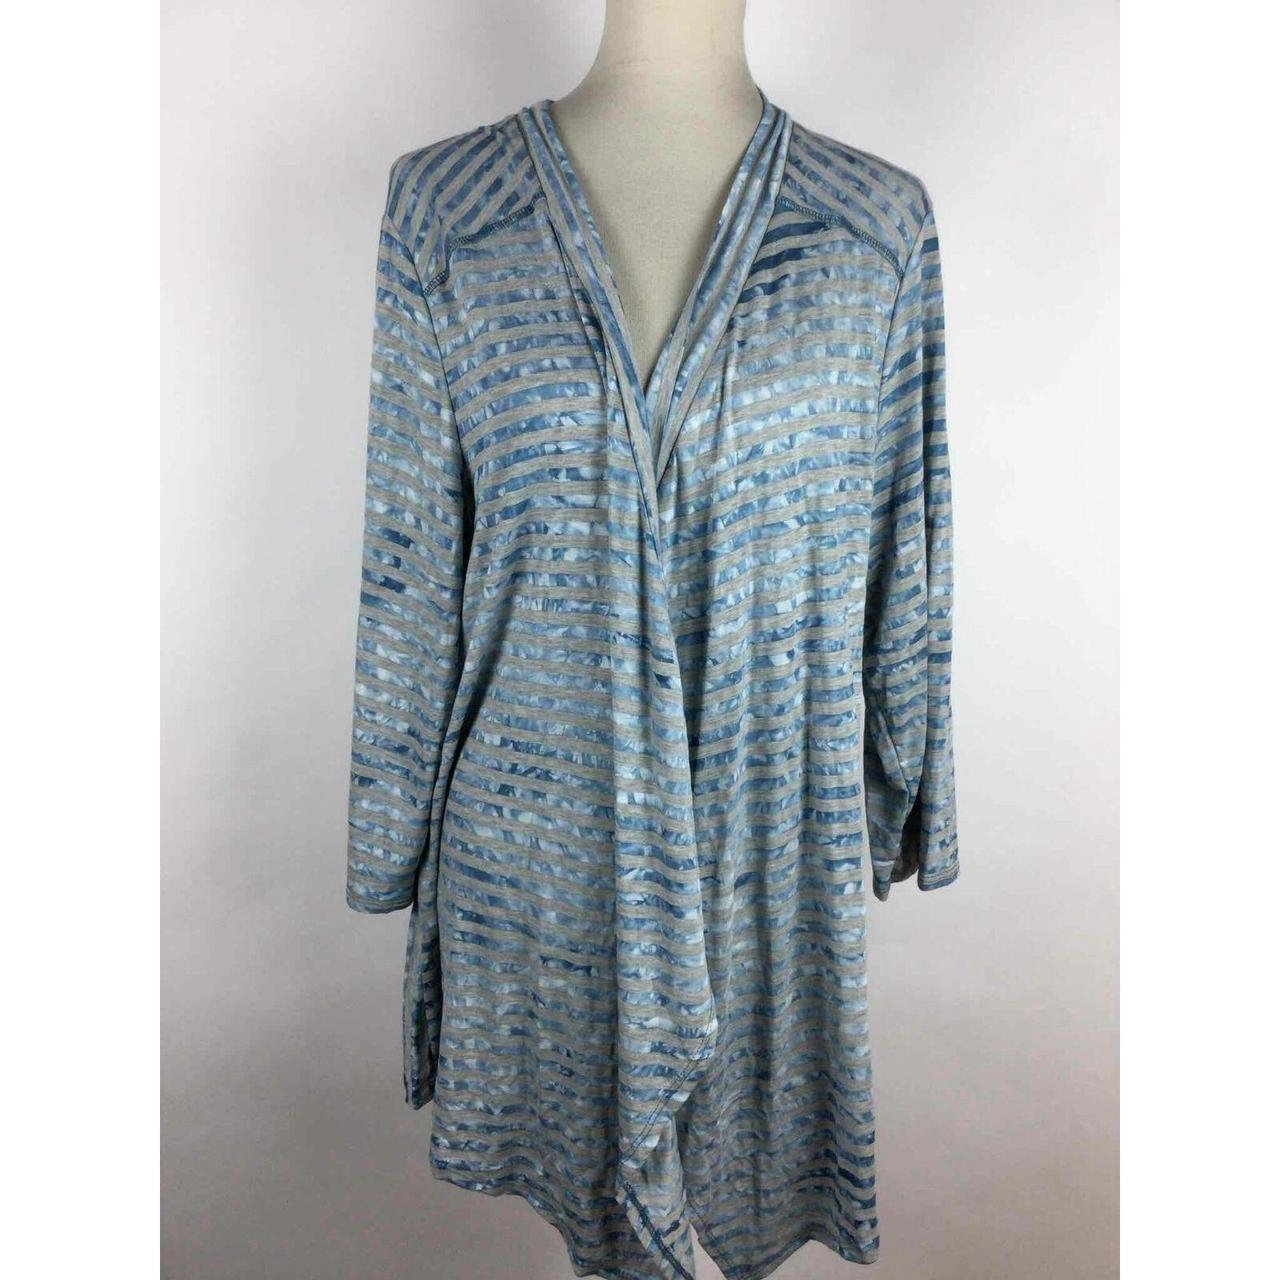 Product Image 1 - NWT Avenue Blue Gray Striped